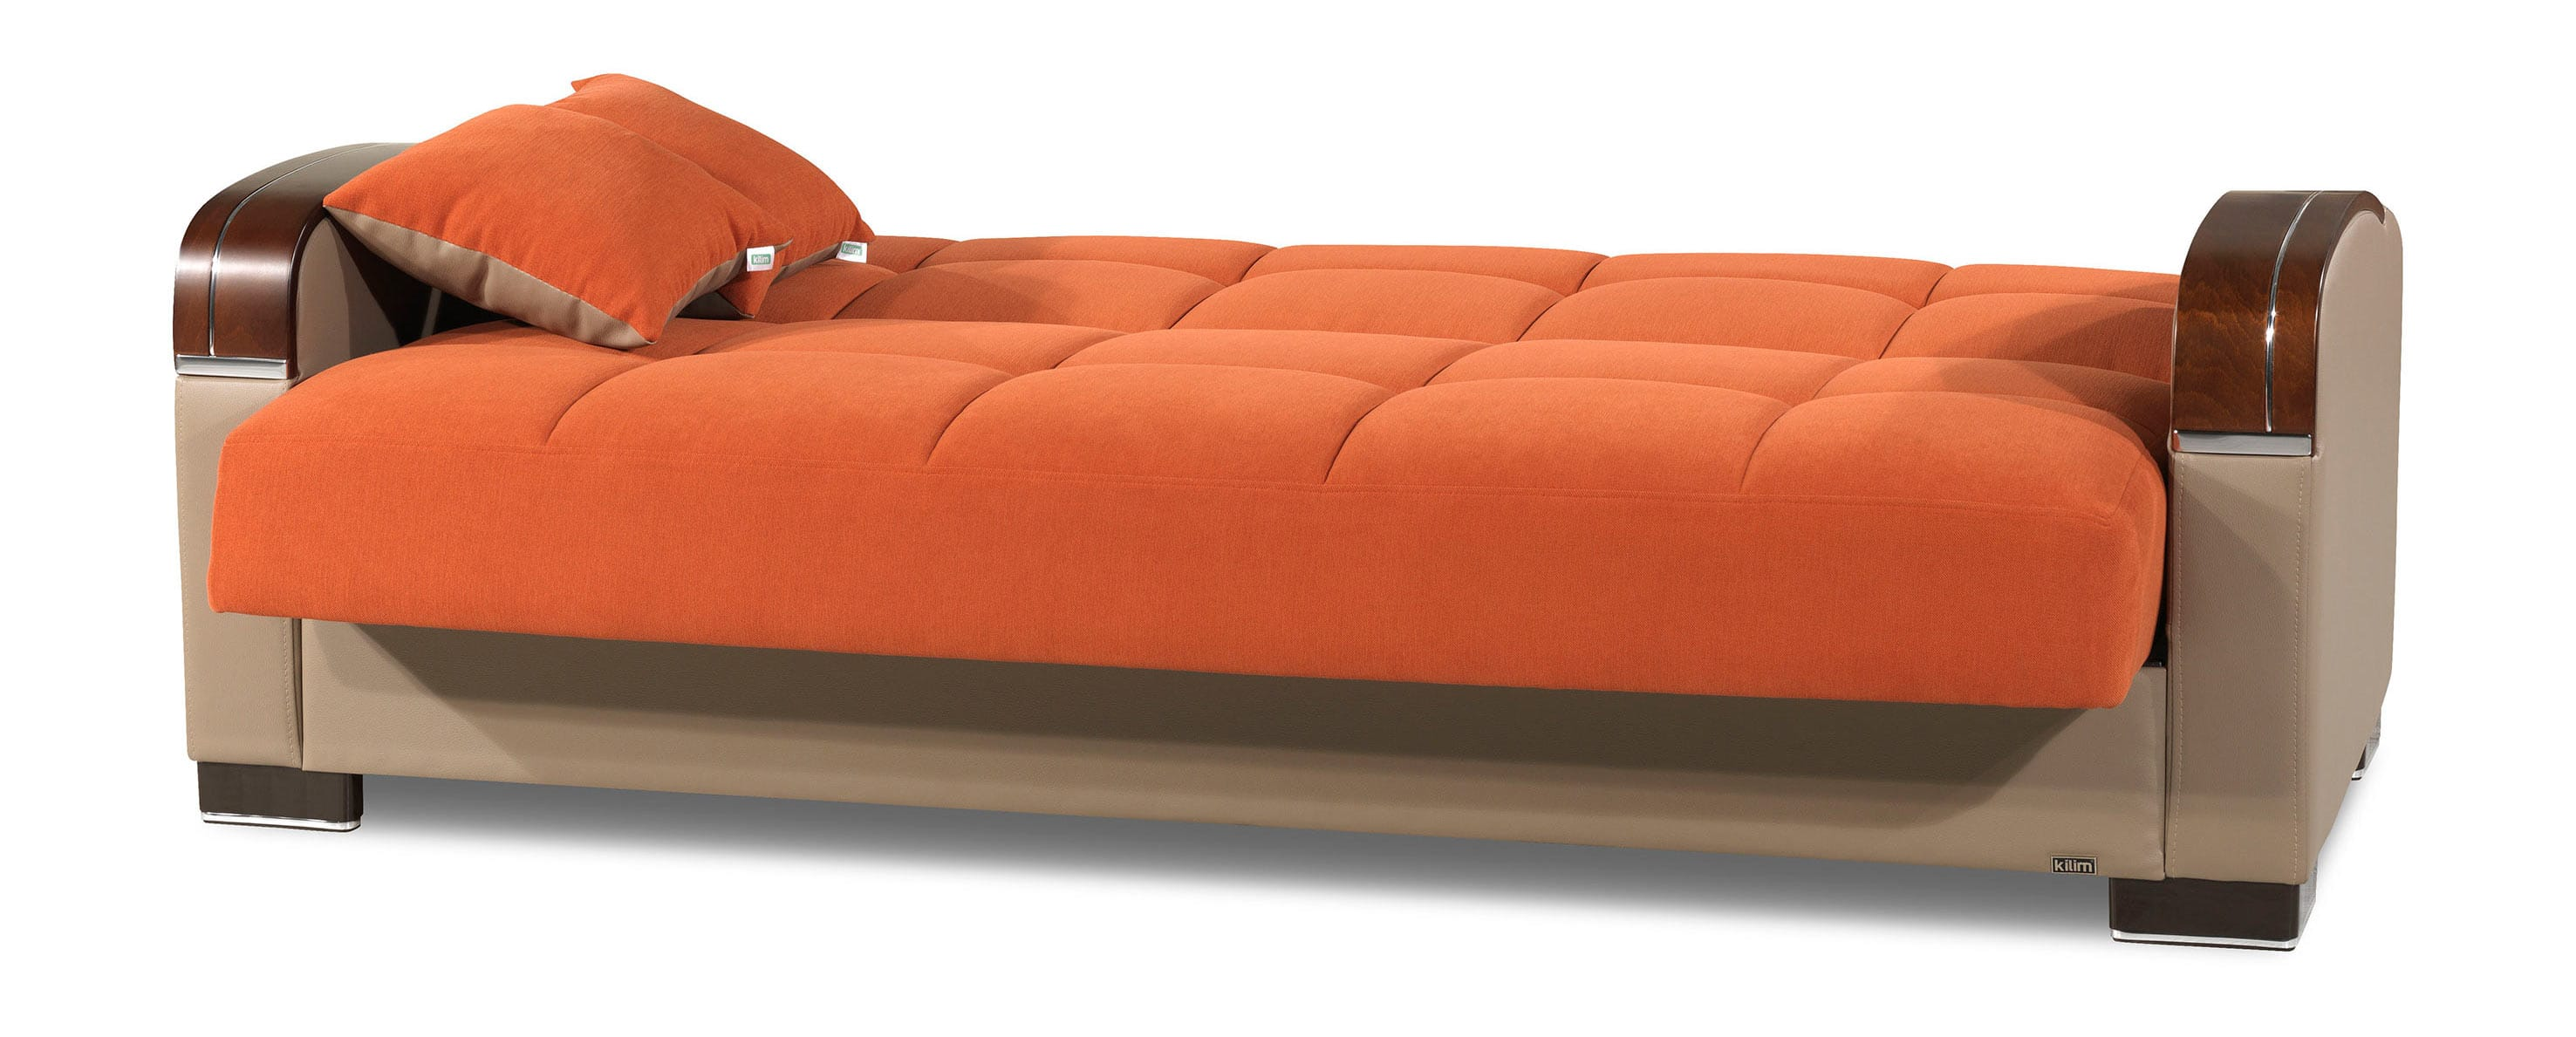 mobimax orange convertible sofa bed by casamode. Black Bedroom Furniture Sets. Home Design Ideas